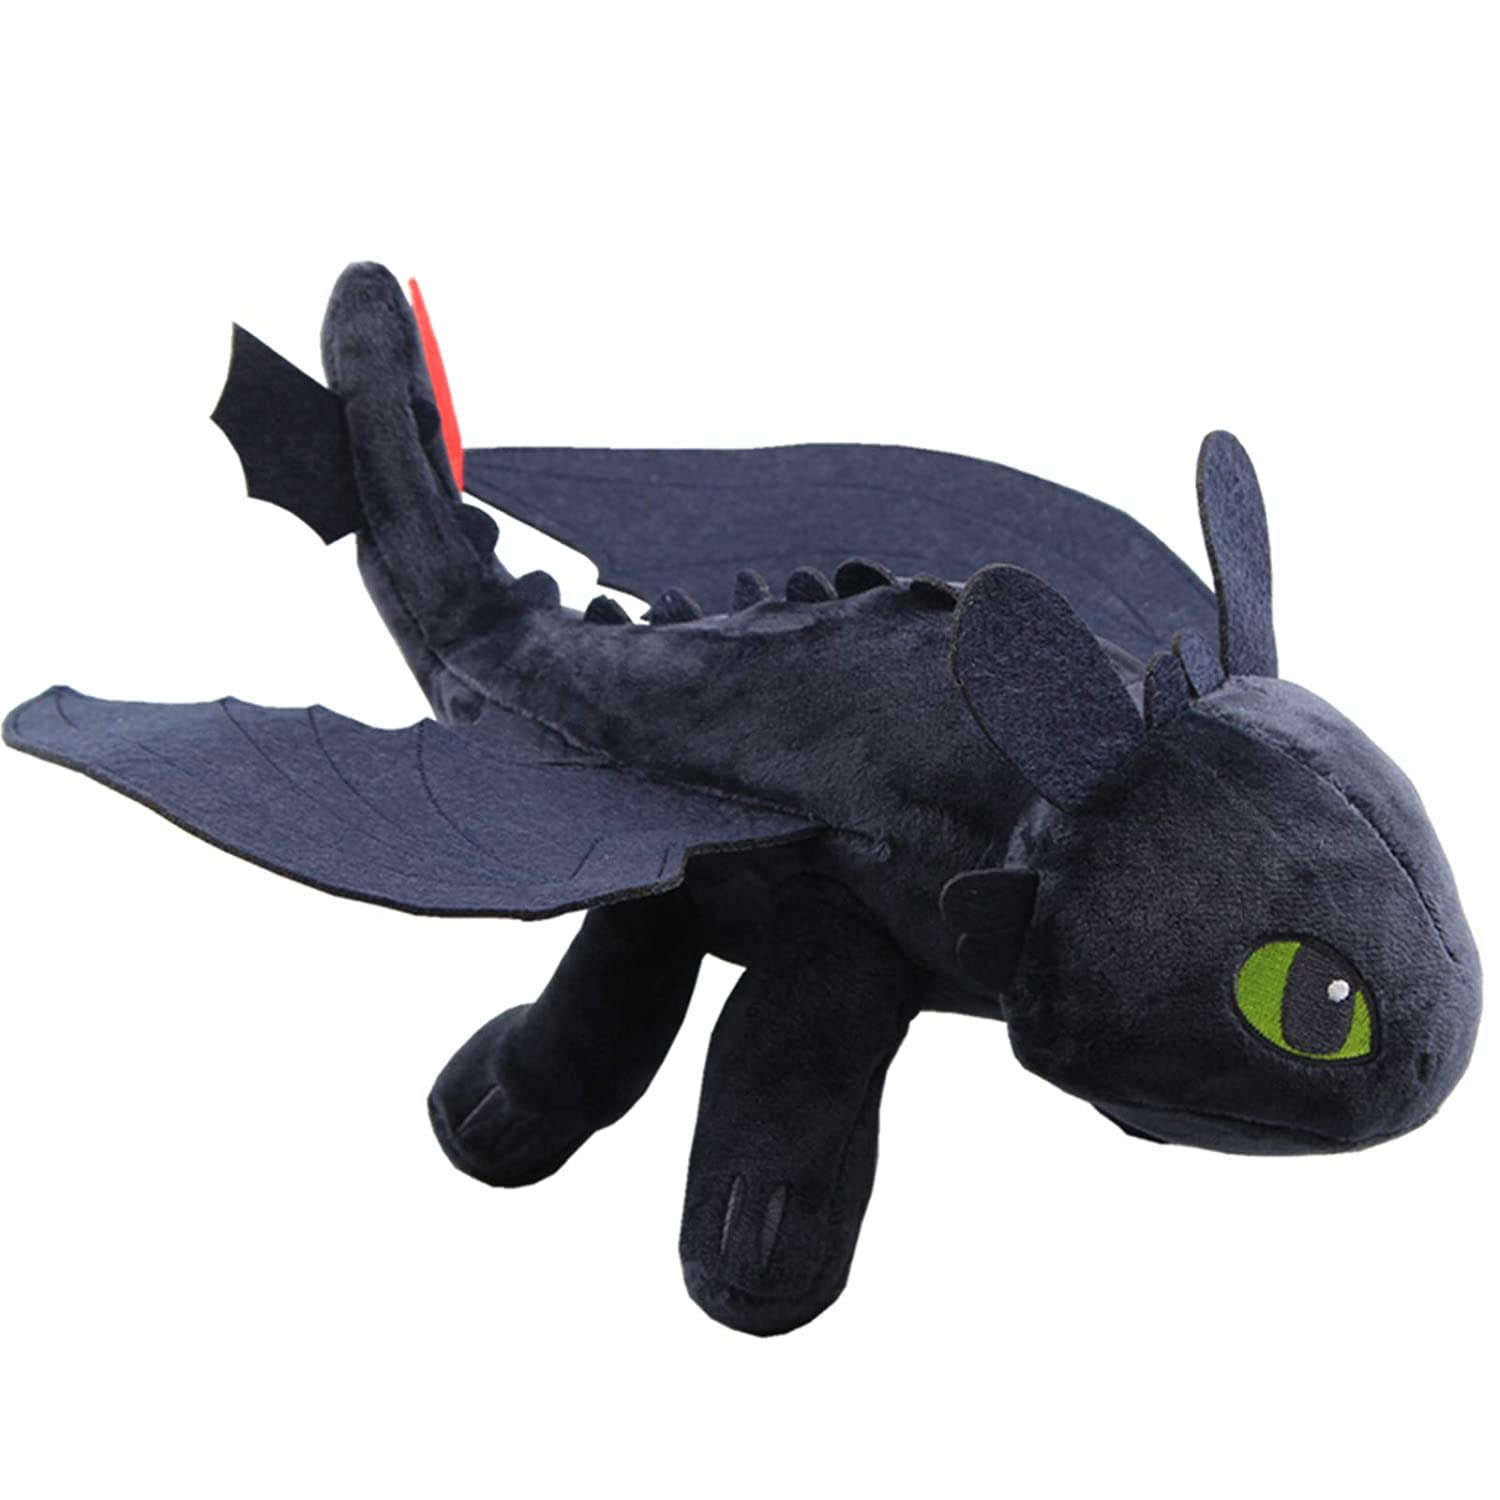 Amazon Com Uiuoutoy Toothless How To Train Your Dragon 3 Night Fury